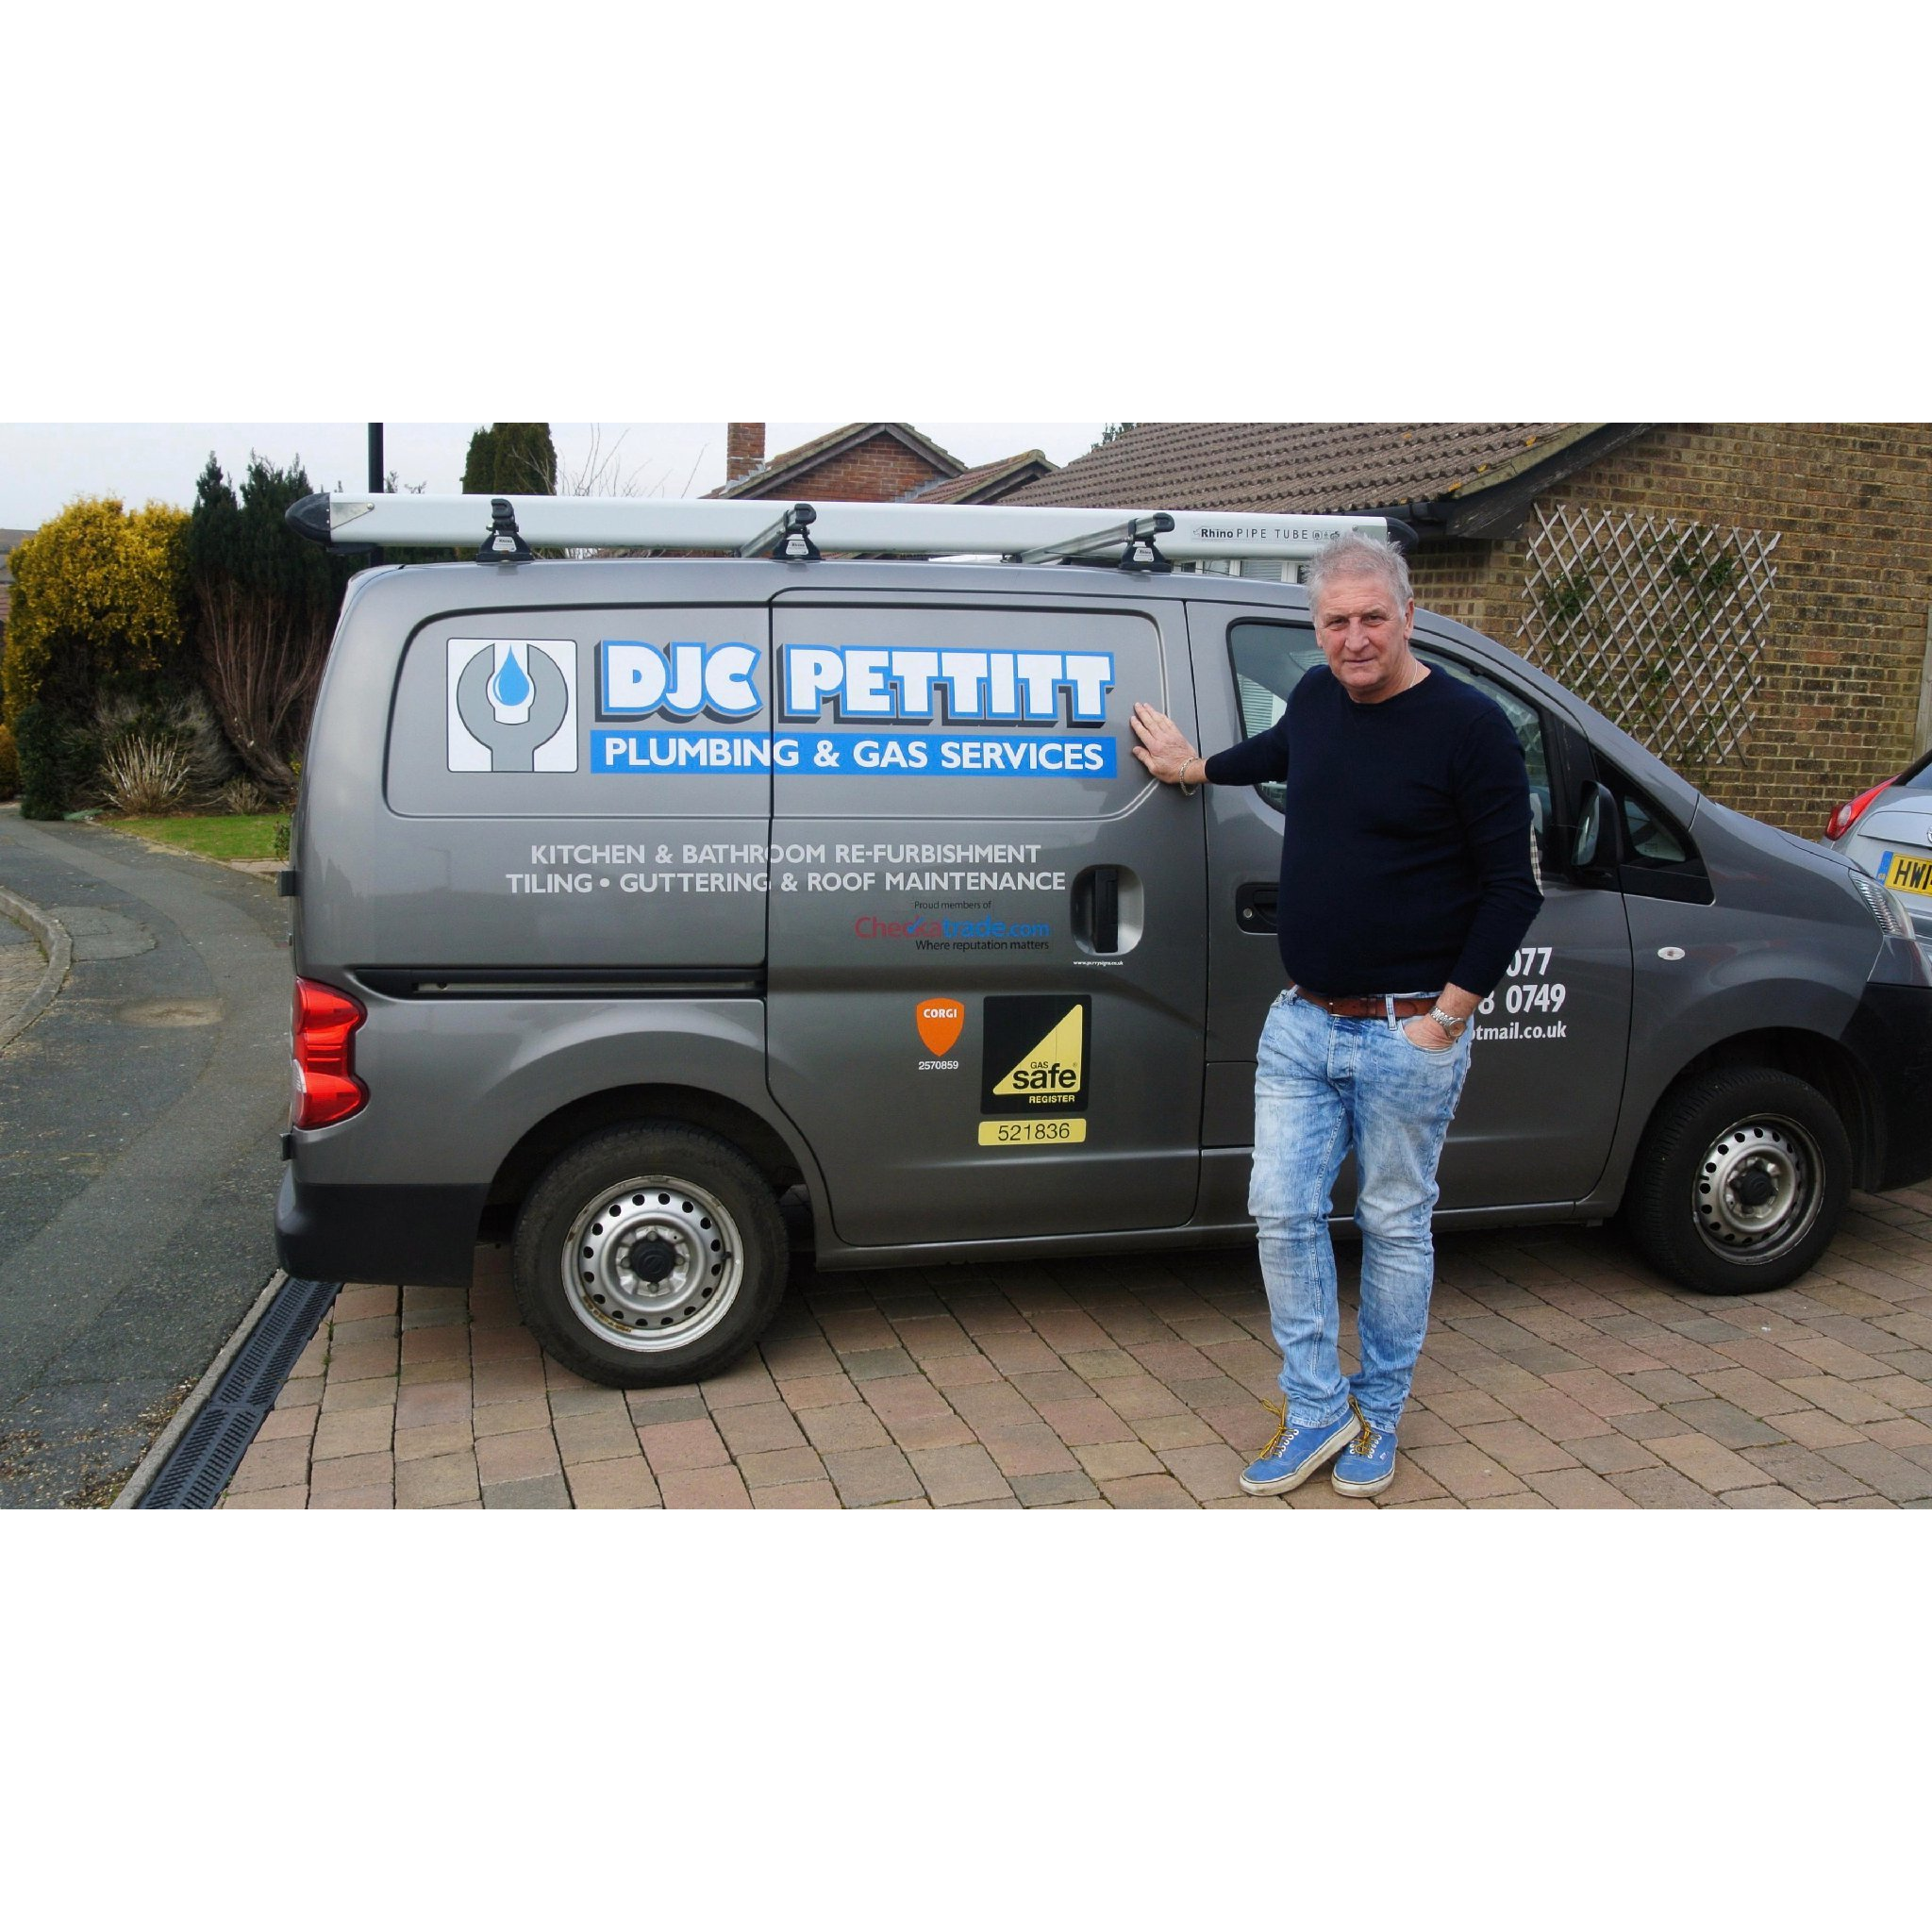 DJC Pettitt Plumbing & Gas Services - Sandown, Isle of Wight PO36 9QQ - 01983 719077 | ShowMeLocal.com